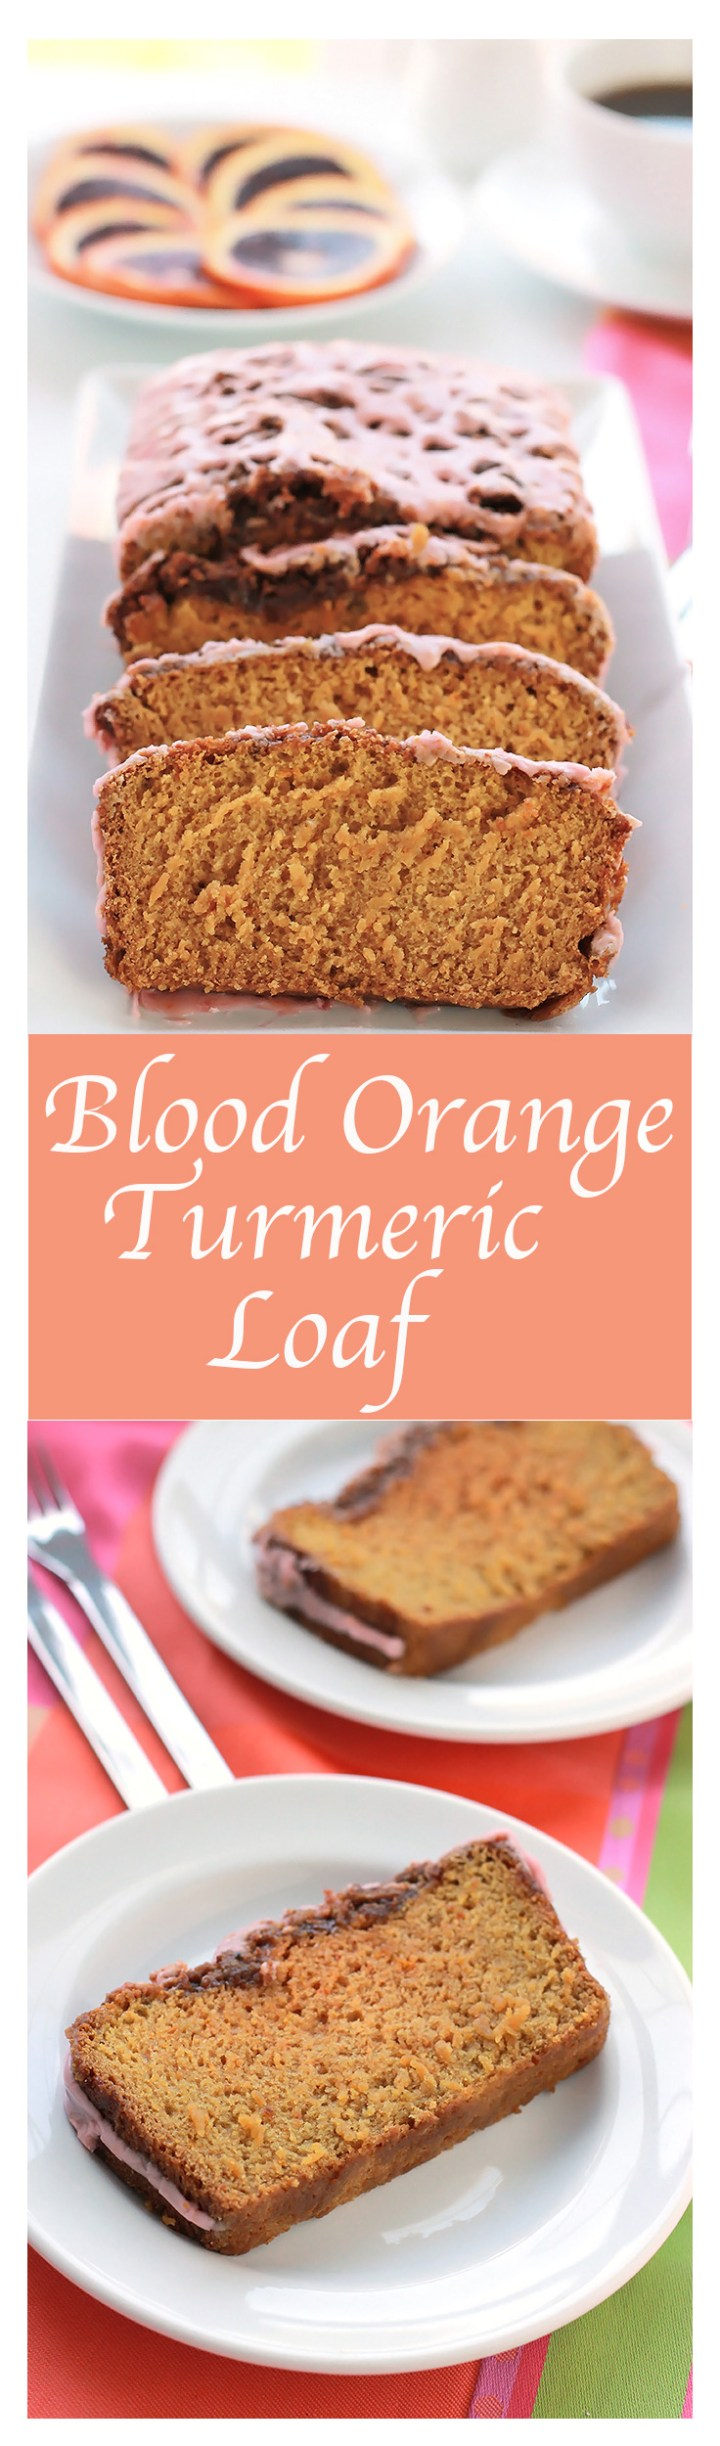 Moist and delicious Blood Orange Turmeric Loaf, made with anti-inflammatory turmeric powder and fresh squeezed blood orange juice. Delicious new brunch favorite.